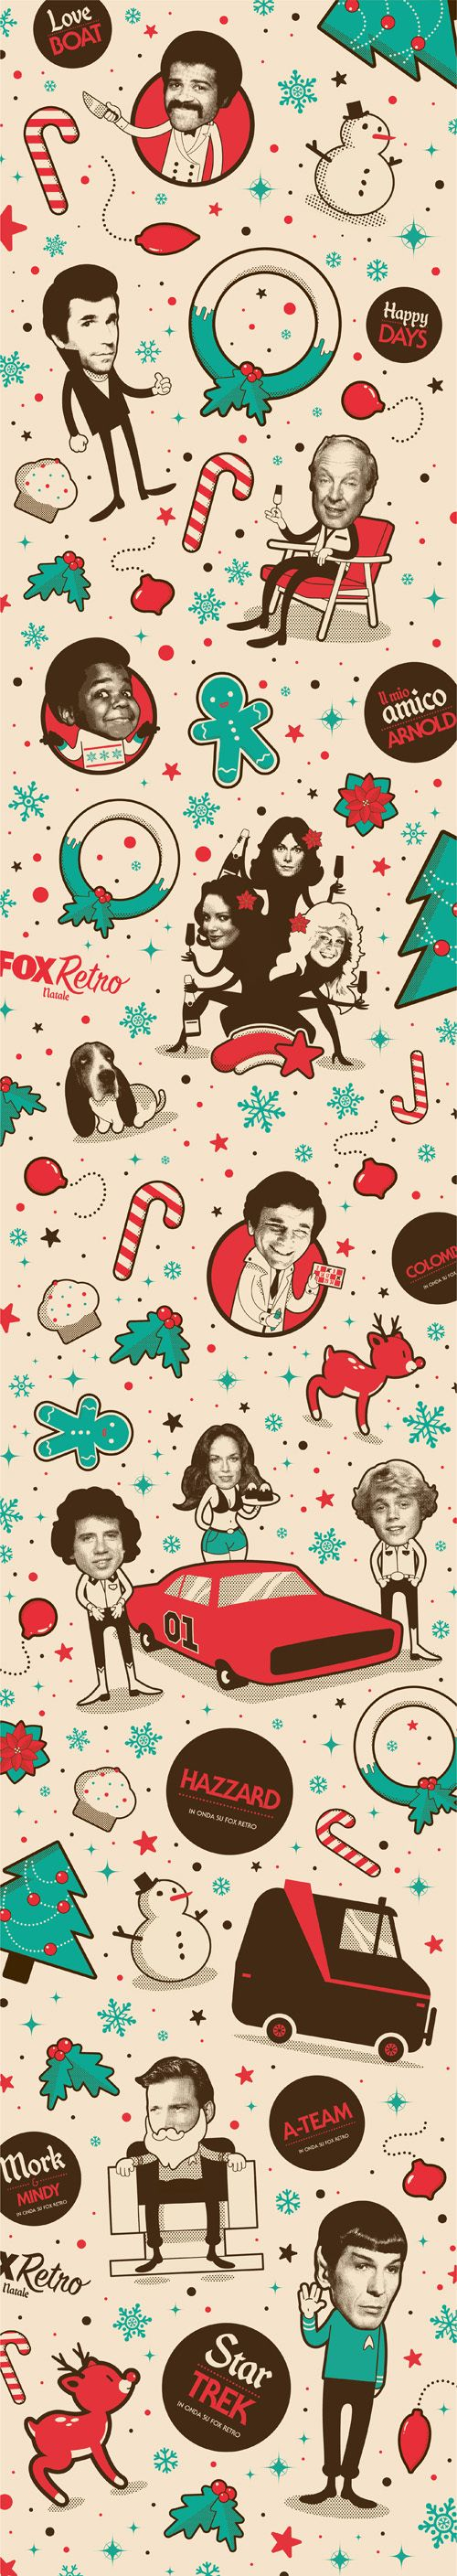 Fox Retro Natale by Santiago Wardak, via Behance